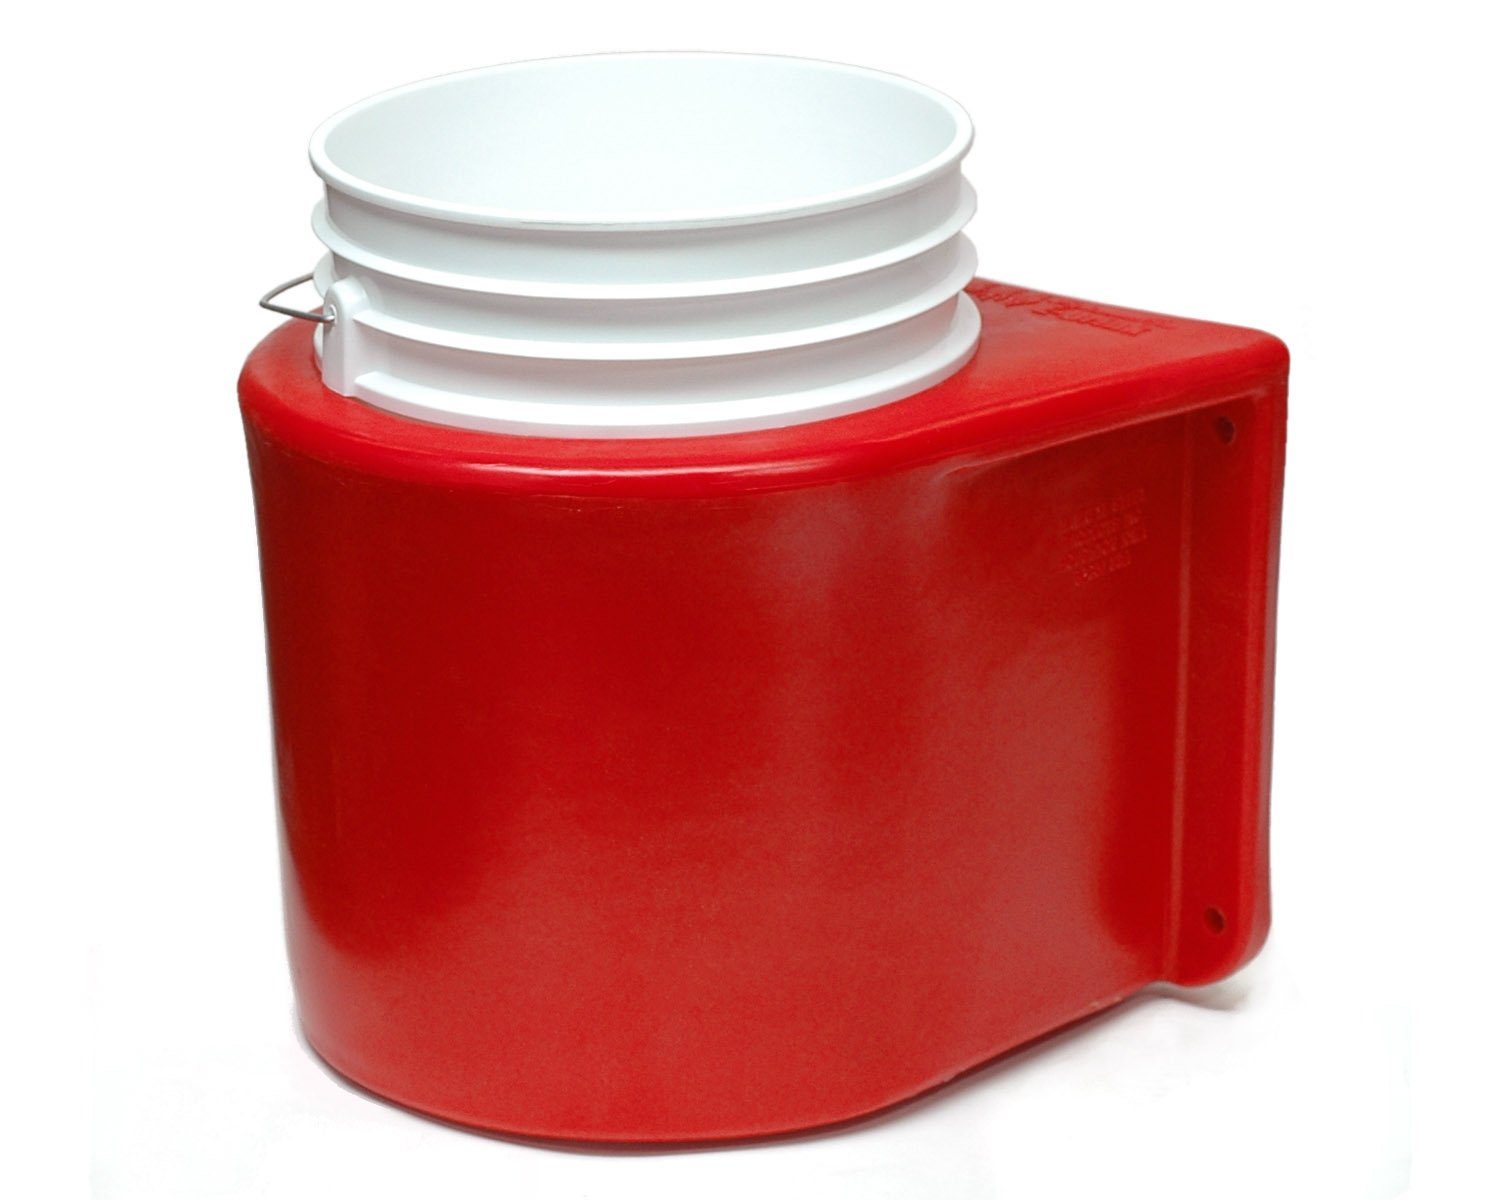 Brower MBH5R Insulated Bucket Holder, Bucket and Cover (Red)